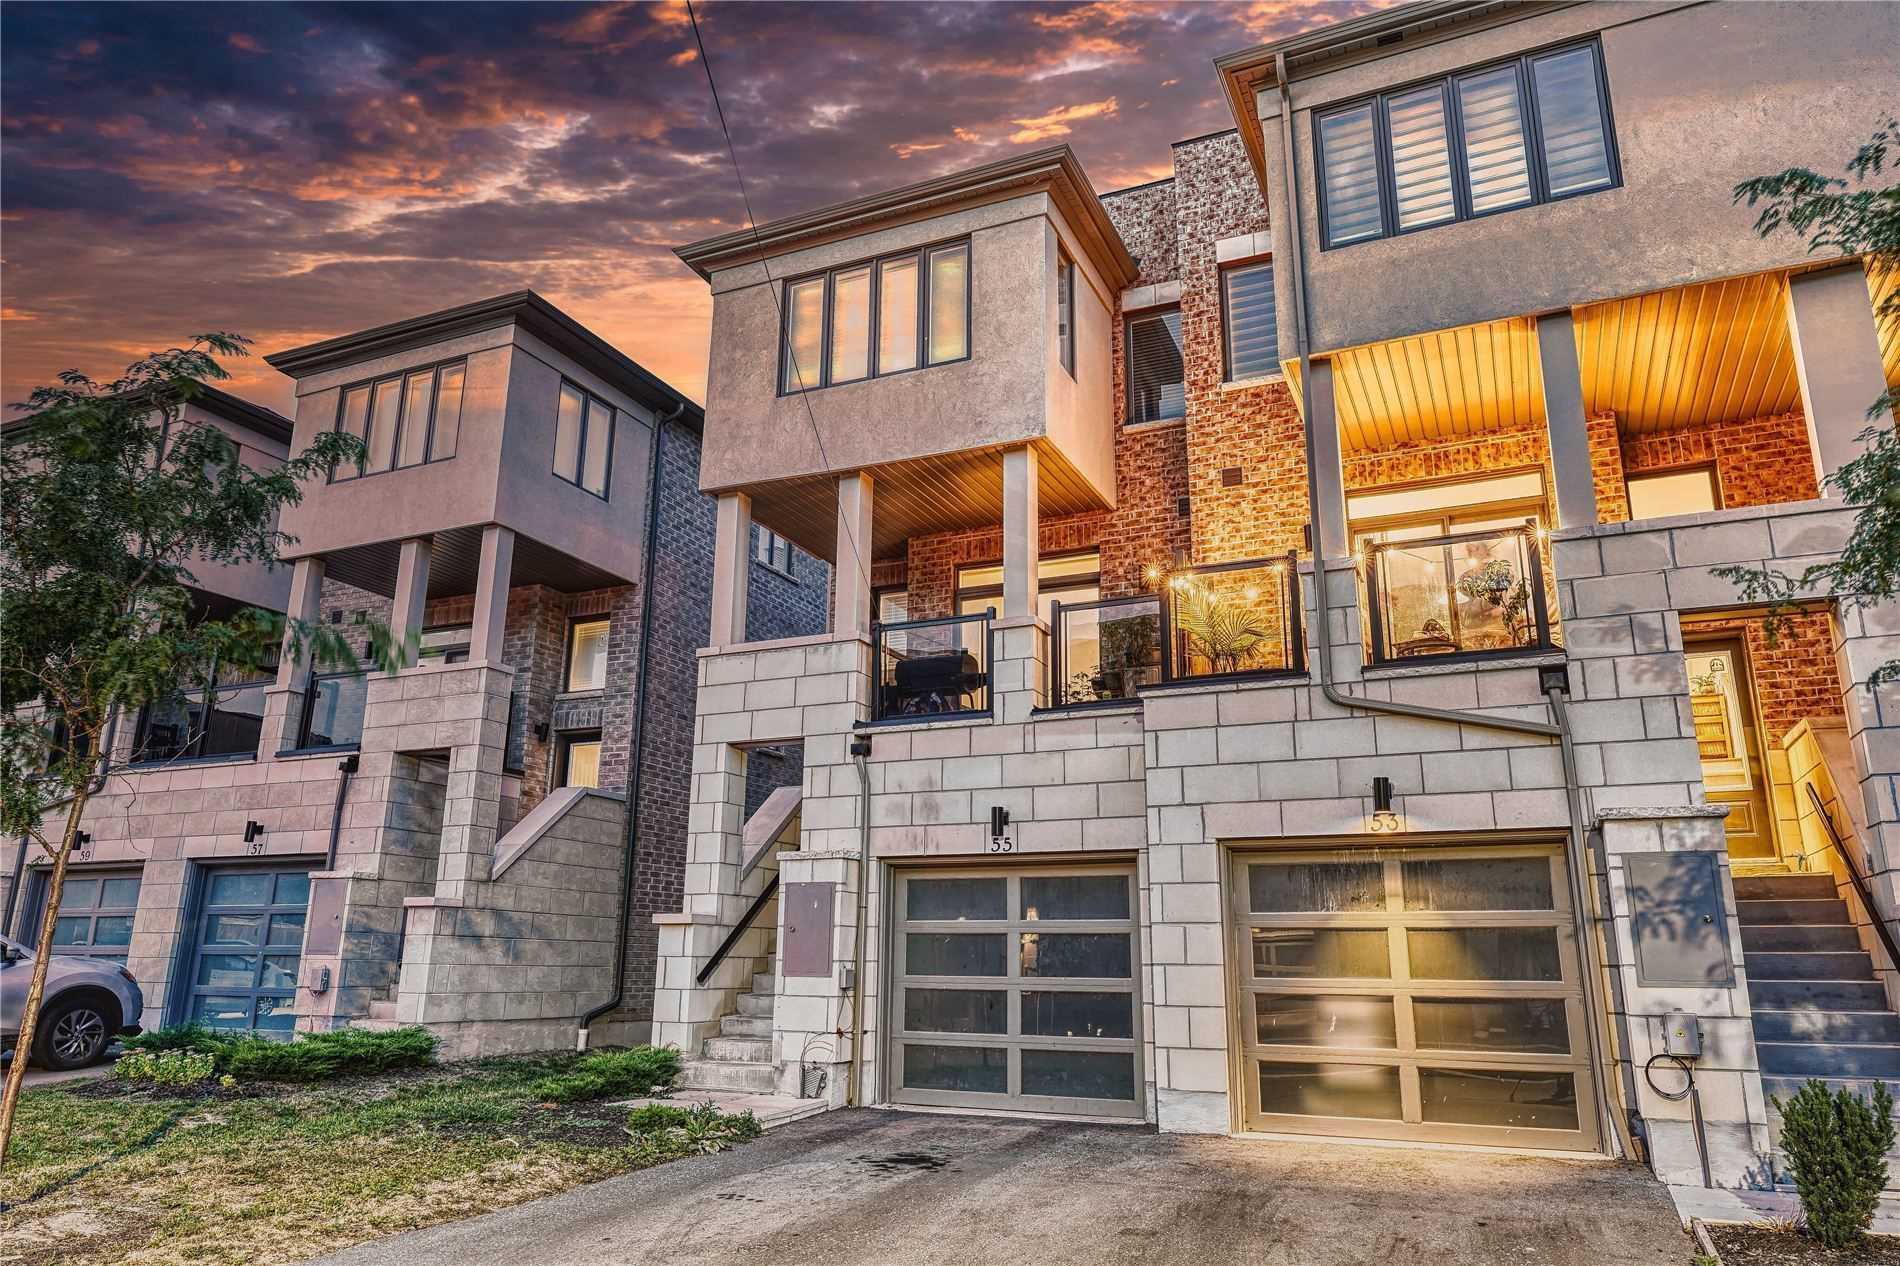 Main Photo: 55 Pallock Hill Way in Whitby: Pringle Creek House (3-Storey) for sale : MLS®# E5359564